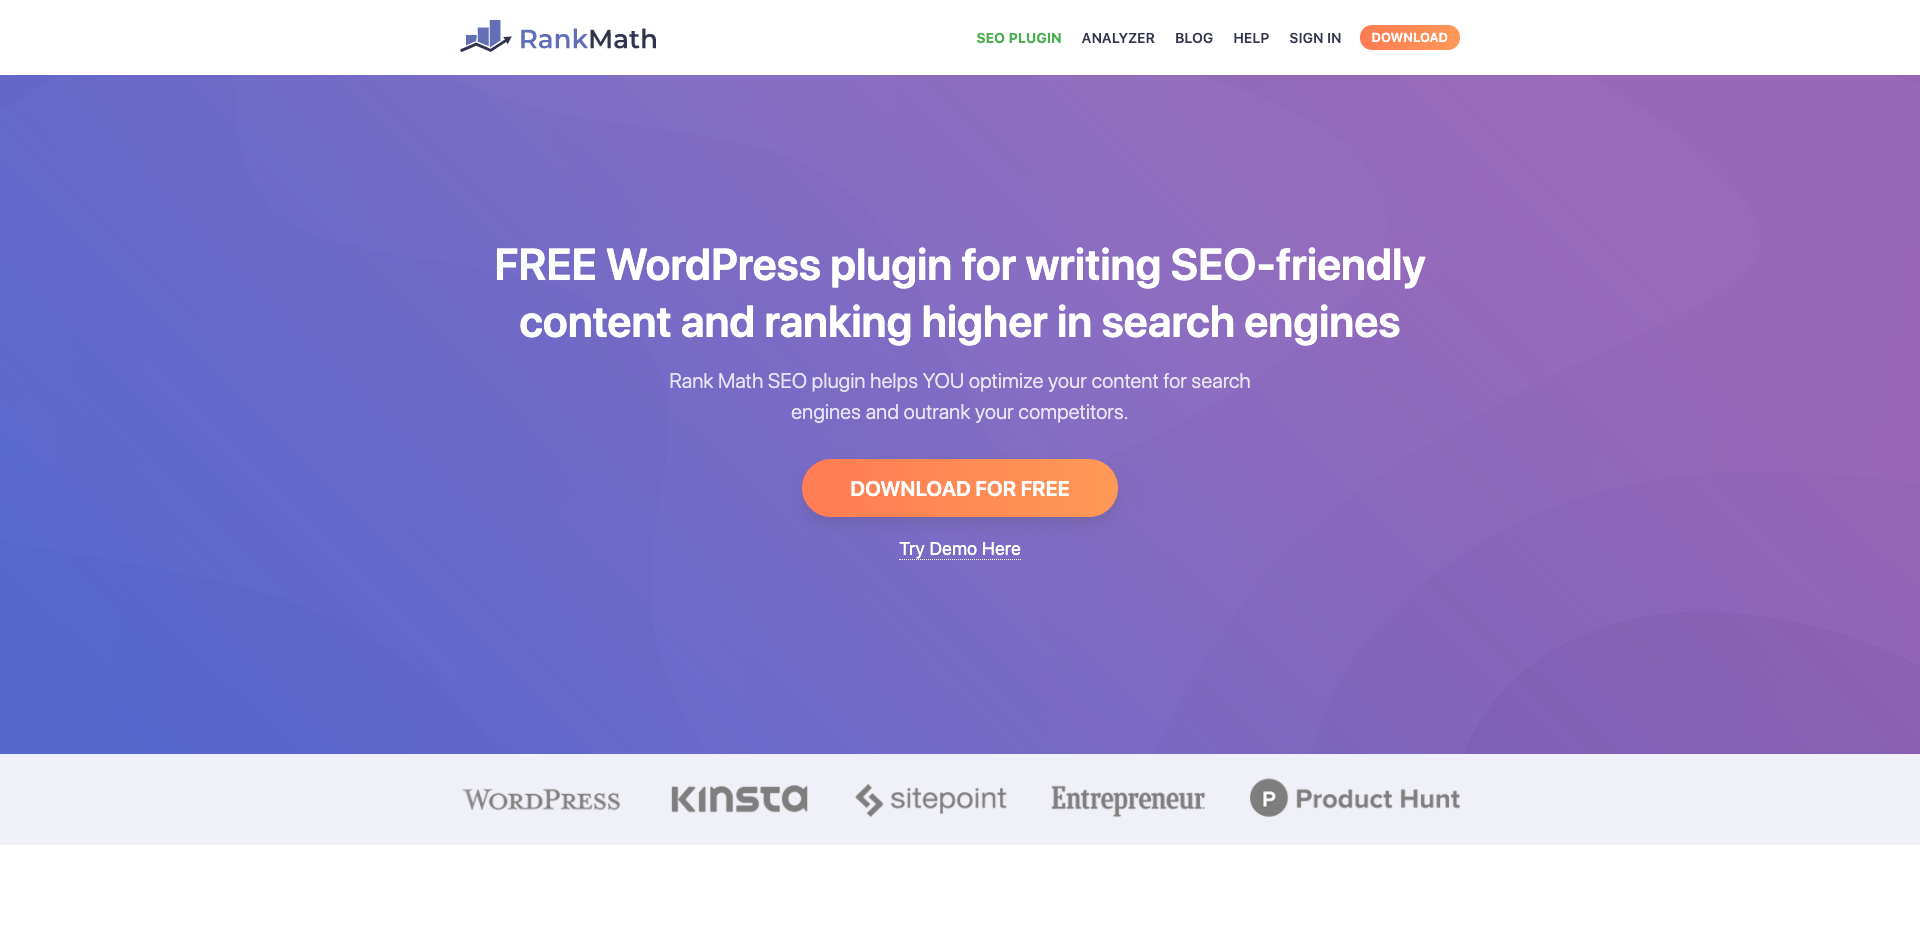 FREE WordPress plugin for writing SEO-friendly content and ranking higher in search engines